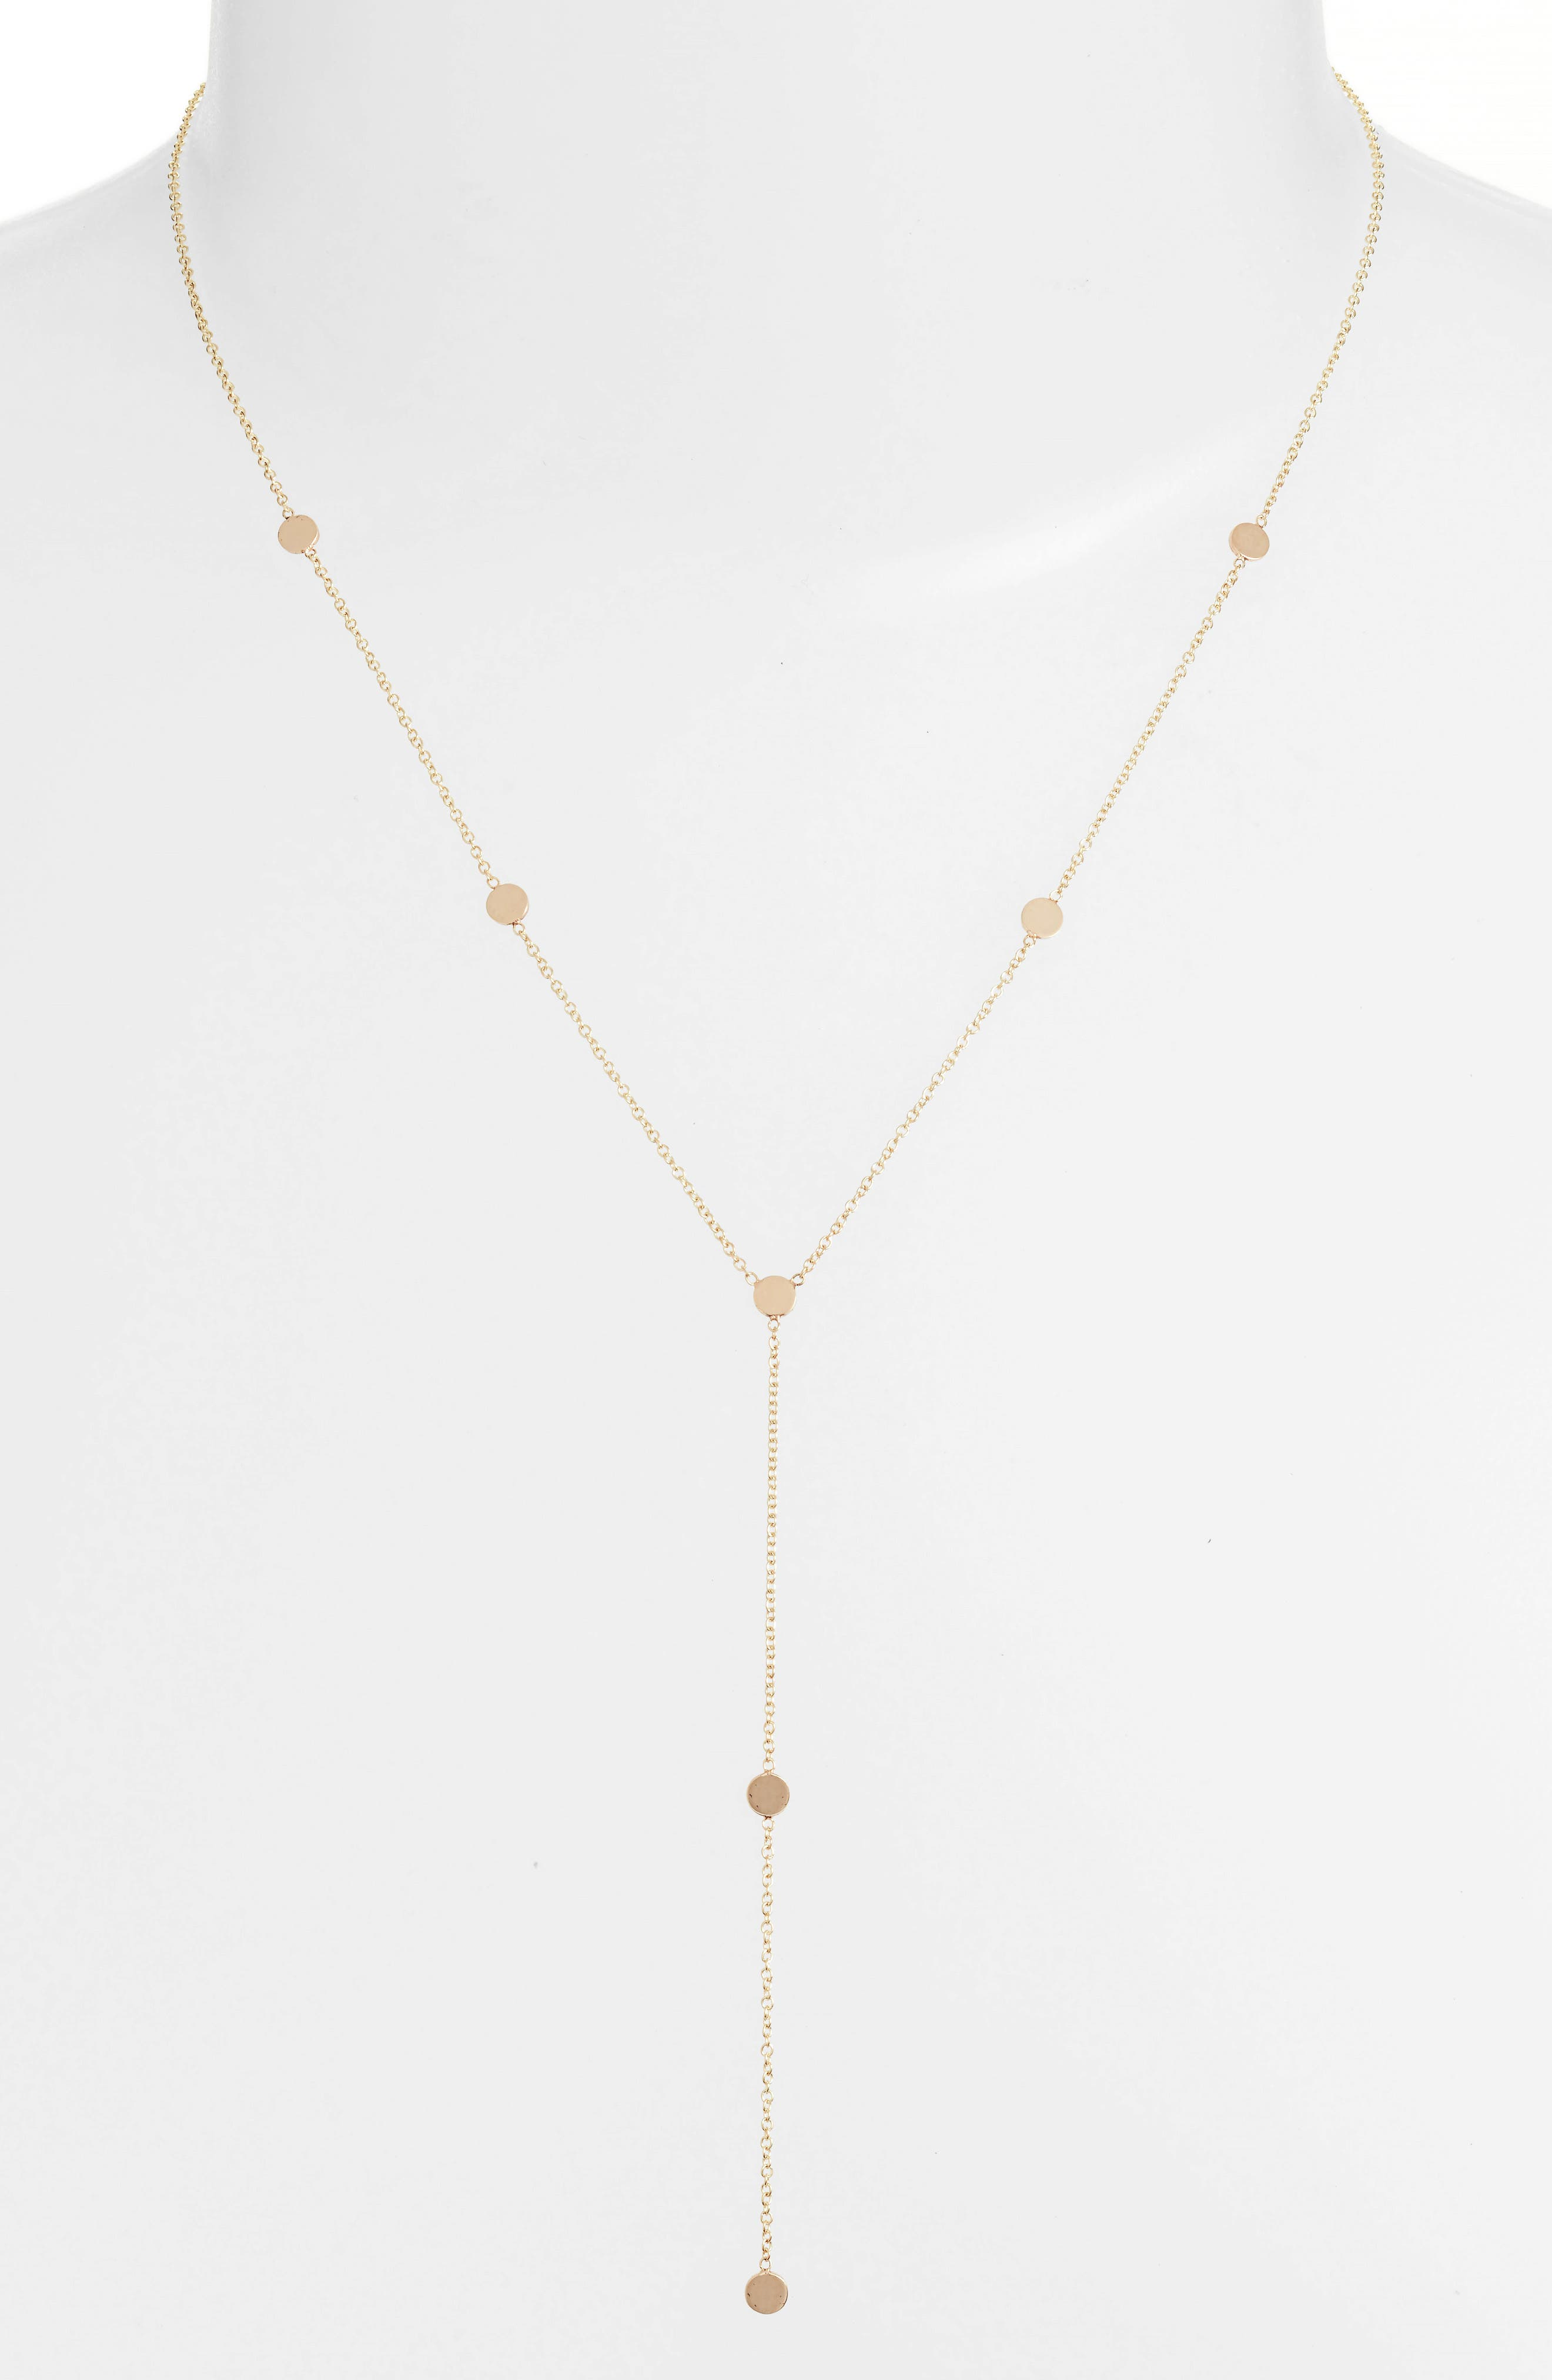 Zoë Chicco Itty Bitty Round Disk Lariat Necklace